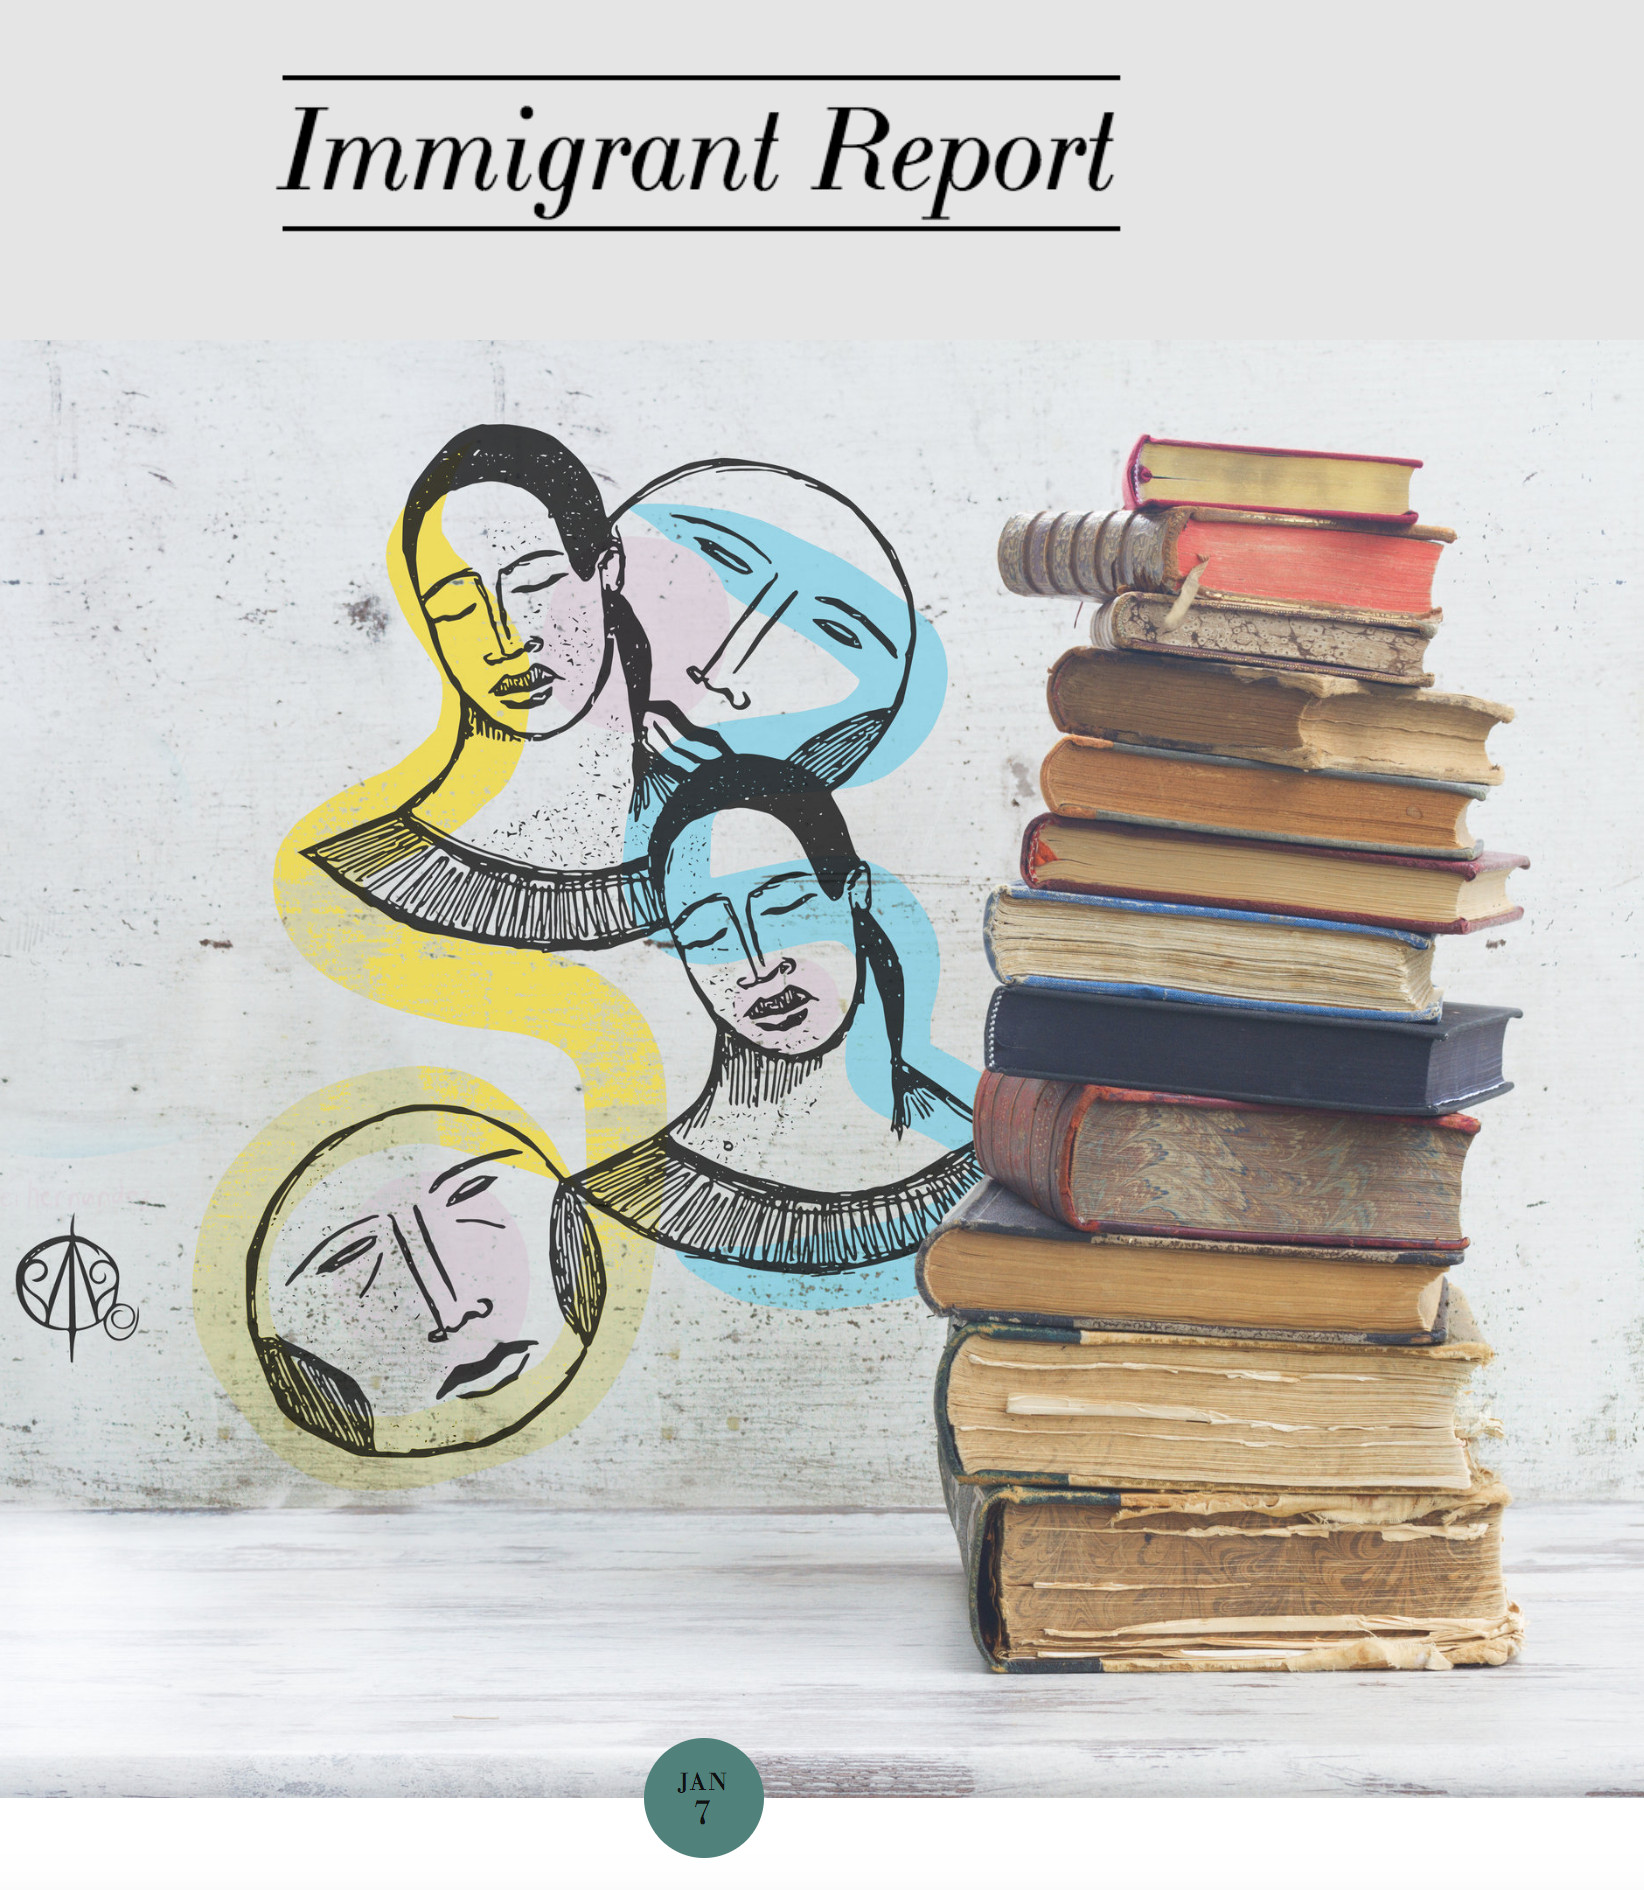 Published in The Immigrant Report